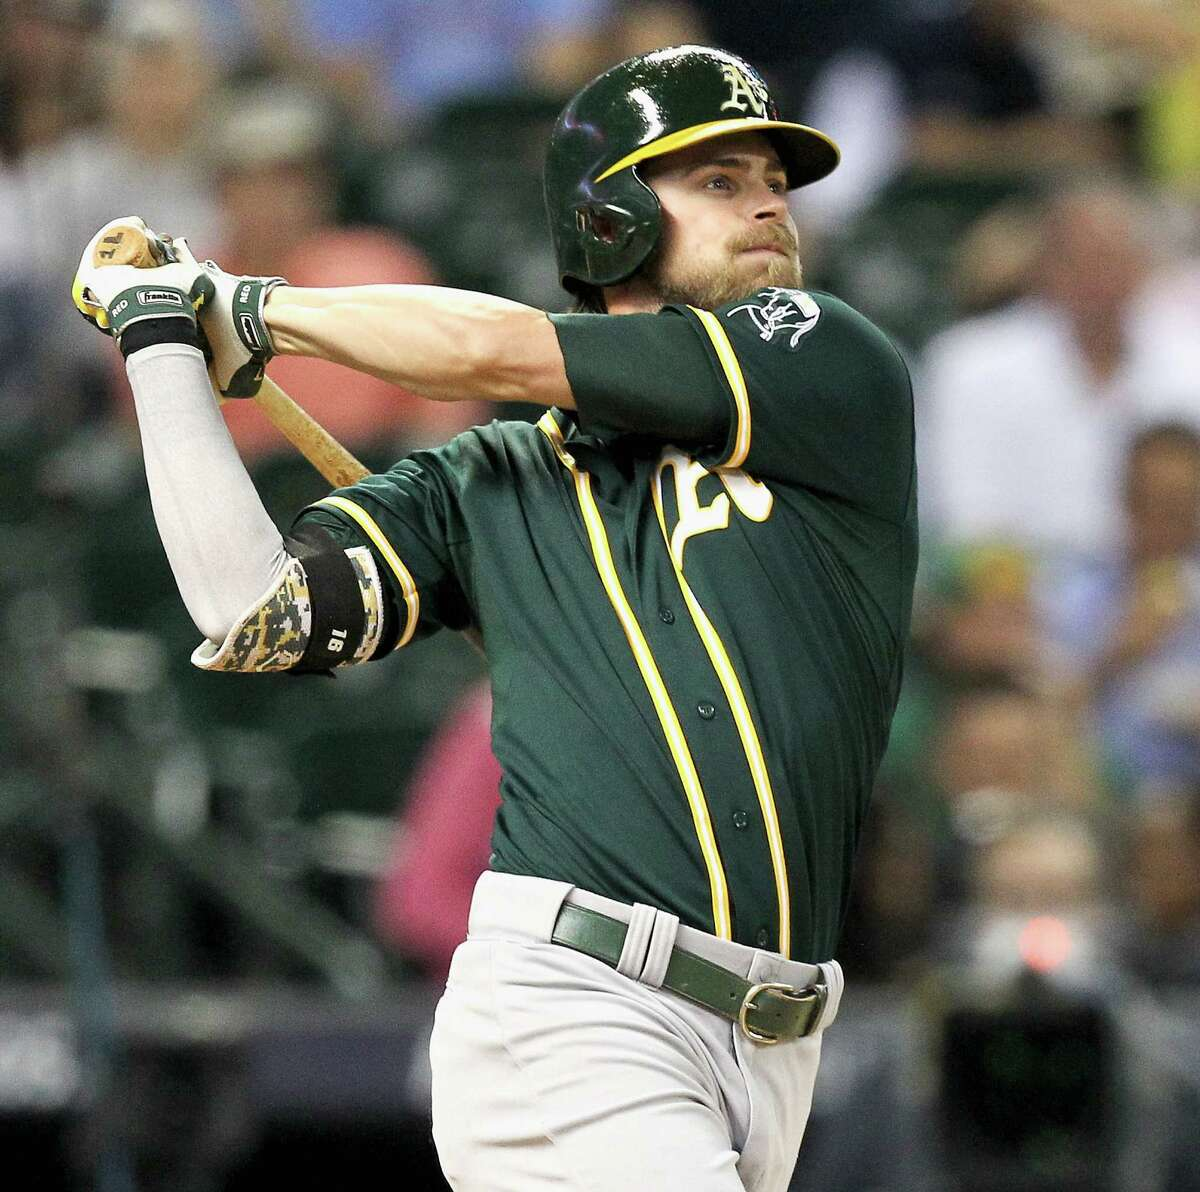 HOUSTON, TX - AUGUST 25: Josh Reddick #16 of the Oakland Athletics hits a home run against the Houston Astros in the fourth inning at Minute Maid Park on August 25, 2014 in Houston, Texas. (Photo by Bob Levey/Getty Images)